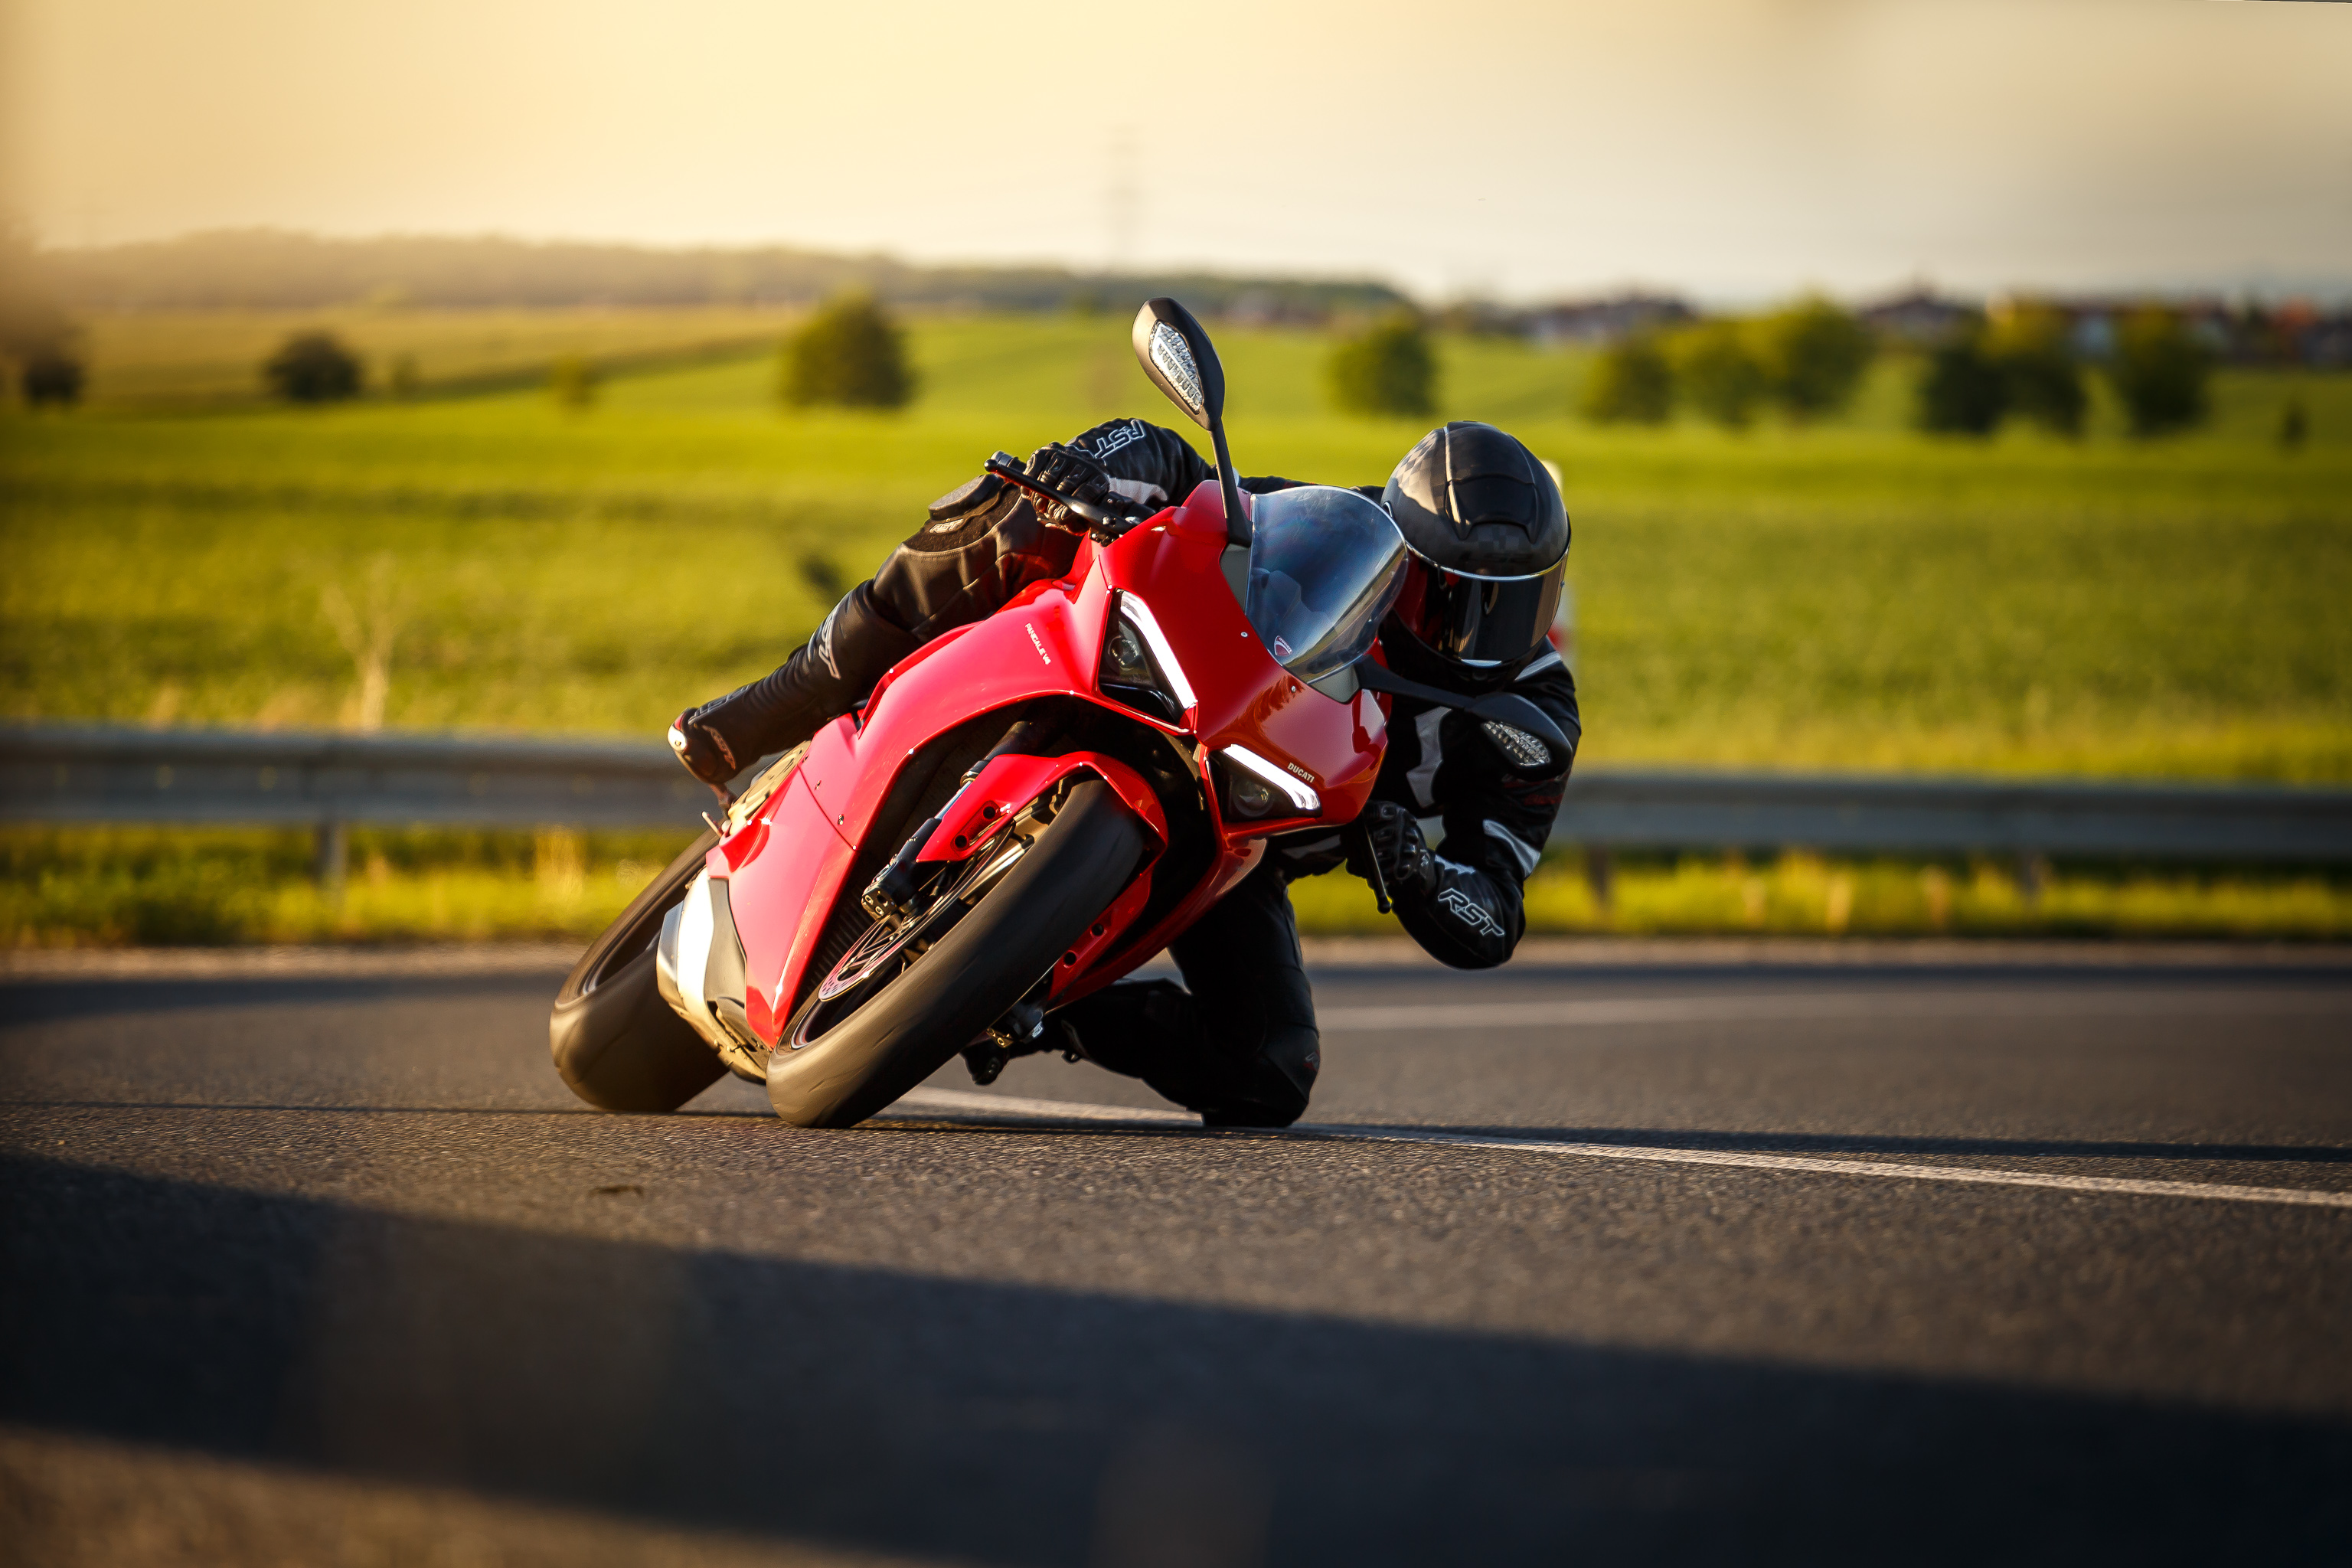 Photo: Ducati Panigale V4